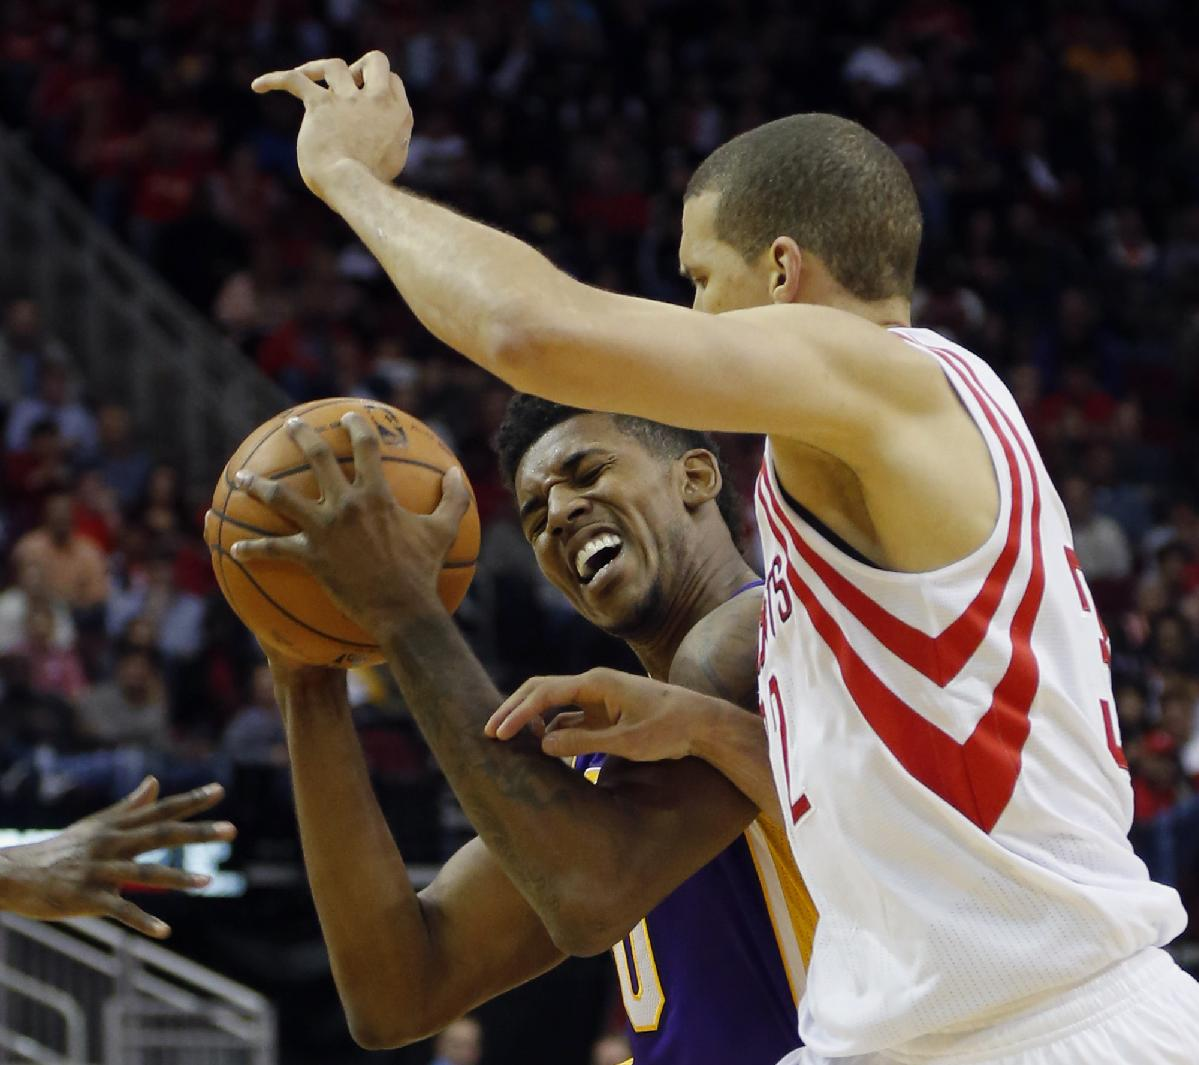 Los Angeles Lakers' Nick Young, left, is fouled by Houston Rockets' Francisco Garcia, right, during the second quarter of an NBA basketball game Thursday, Nov. 7, 2013, in Houston